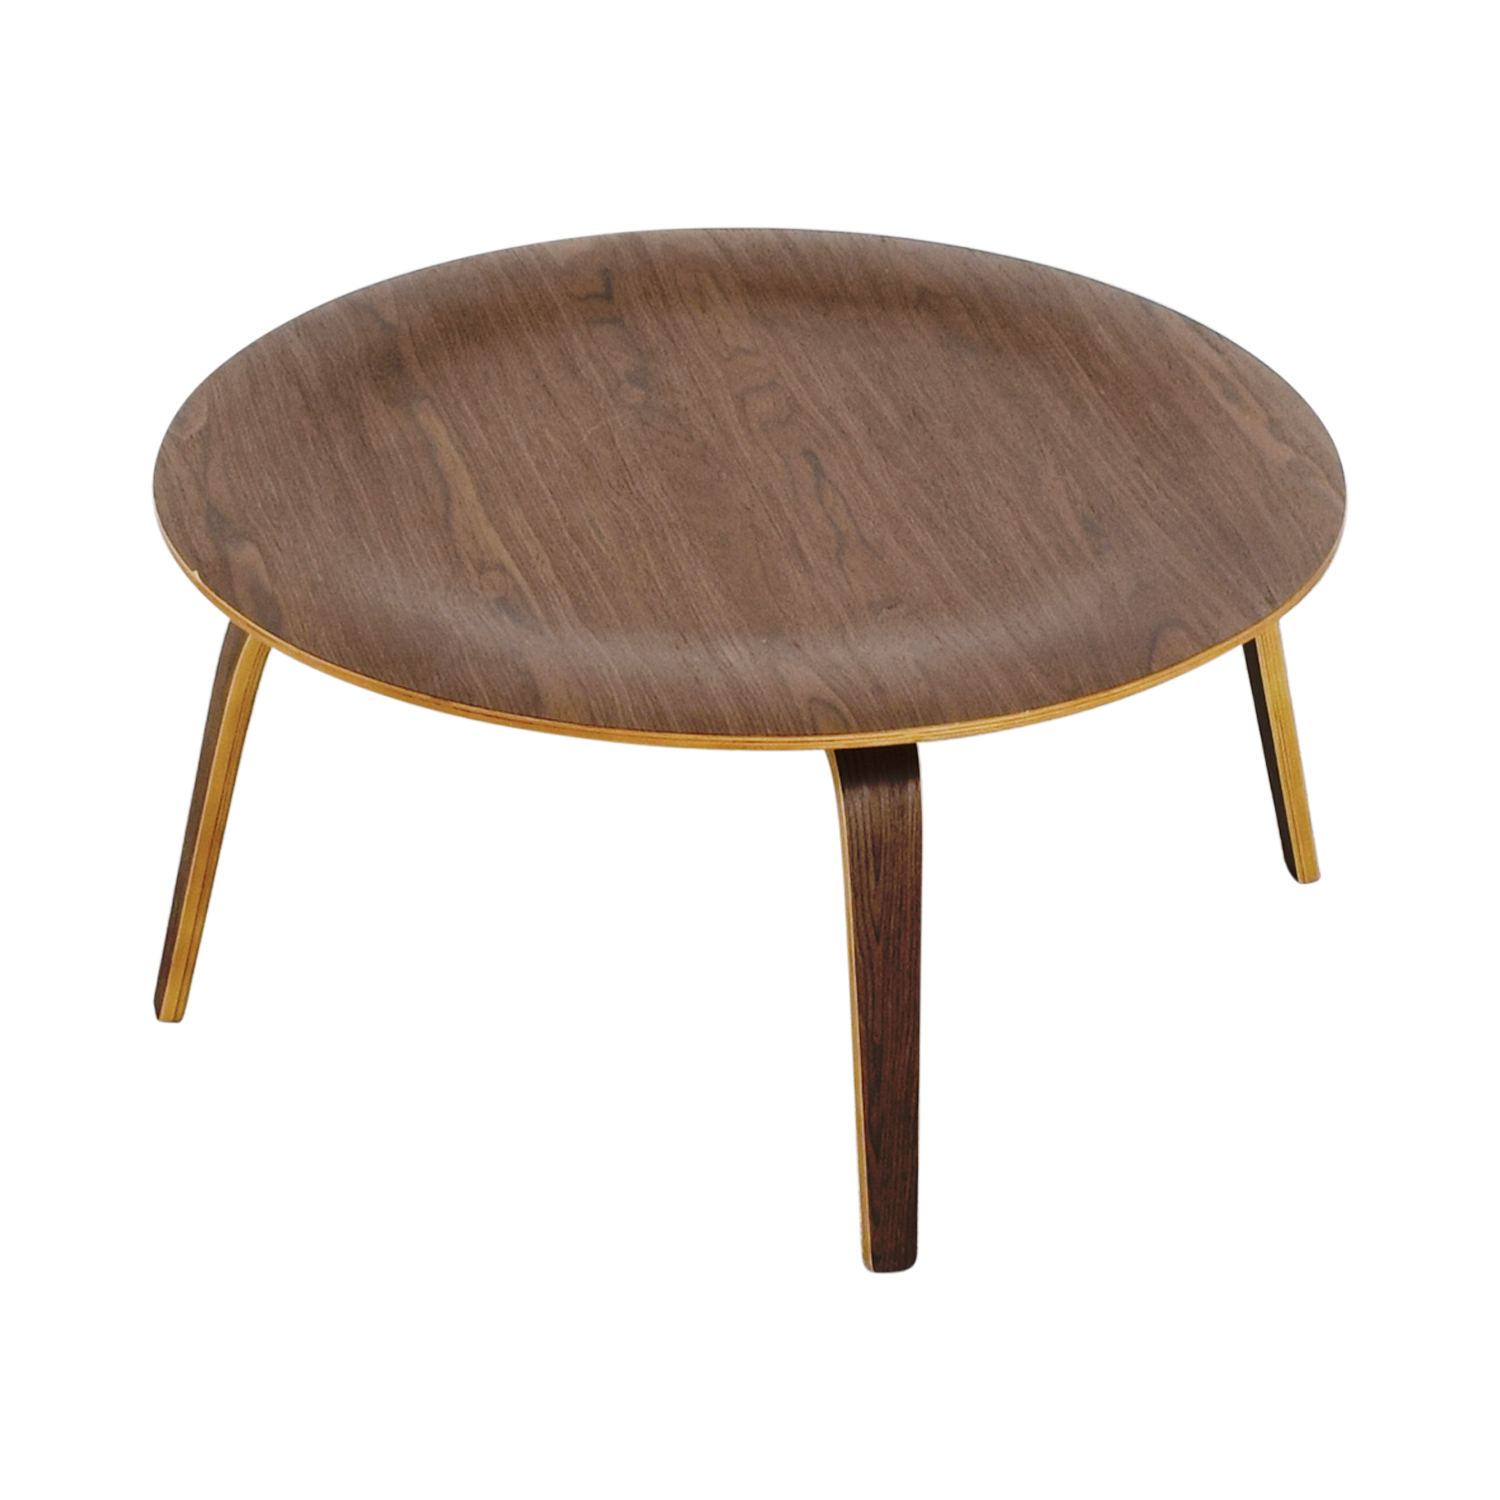 Modway Modway Round Coffee Table Espresso